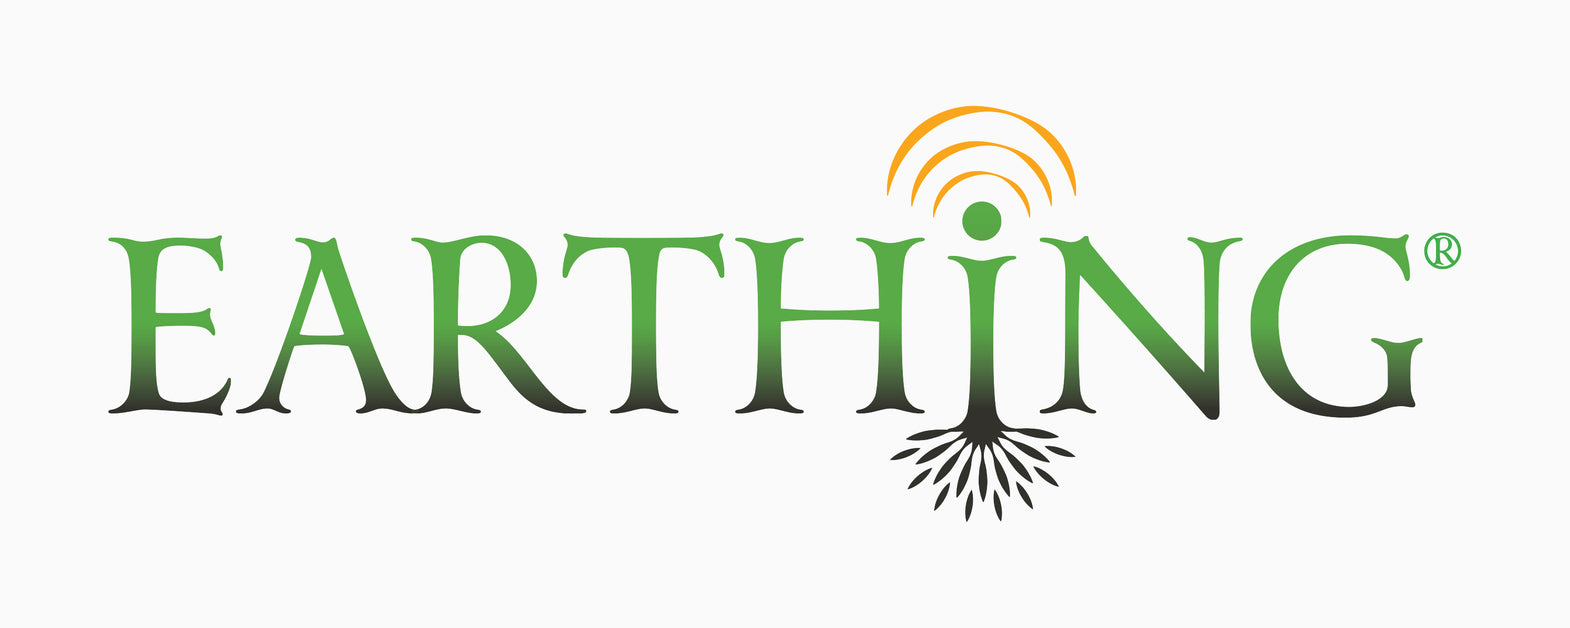 Earthing & Grounding Products | The Original Grounding Innovators